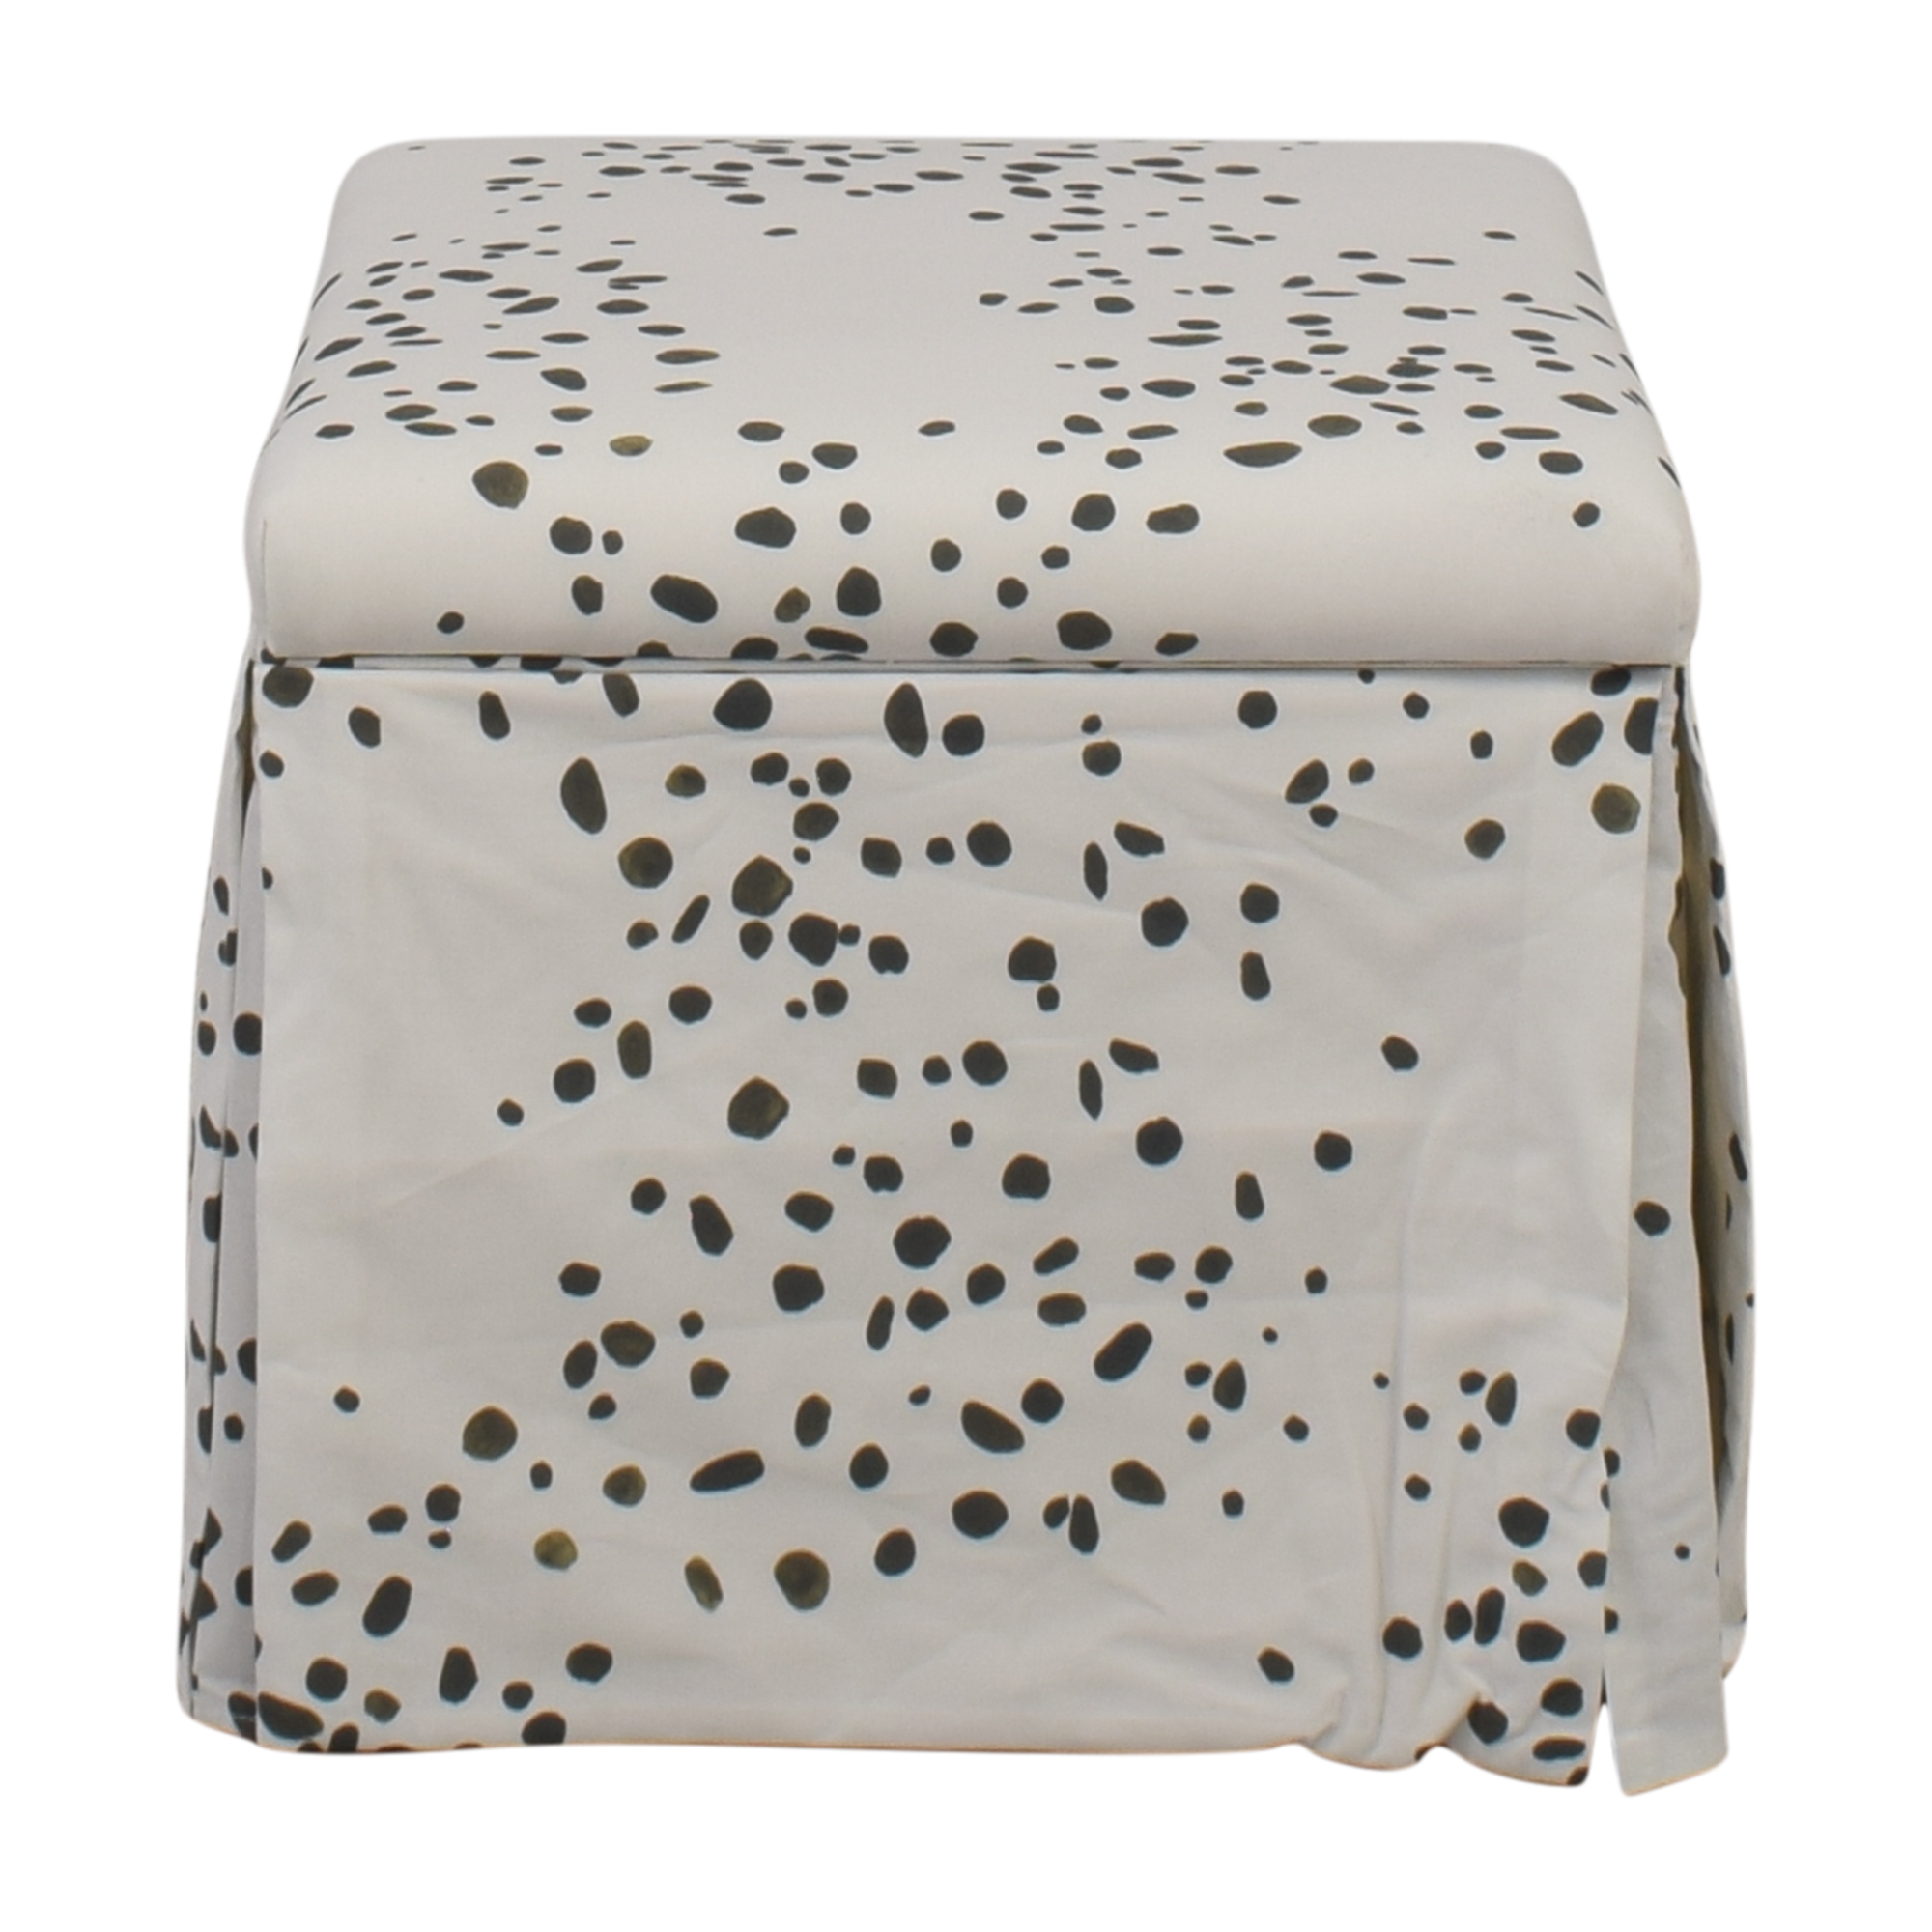 shop The Inside Skirted Storage Ottoman The Inside